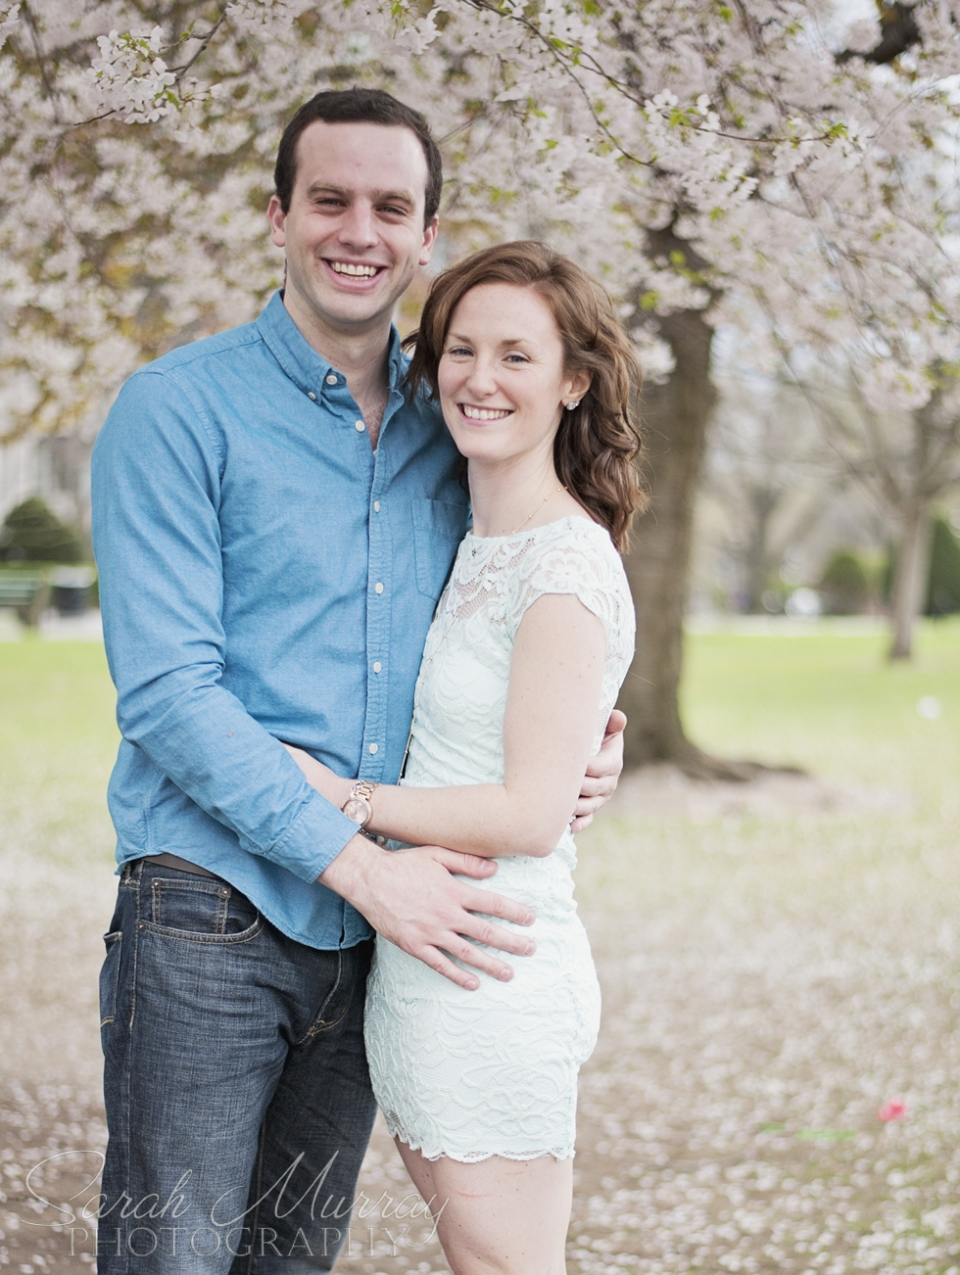 Boston Engagement Session at the Boston Public Garden, Massachusetts - Sarah Murray Photography